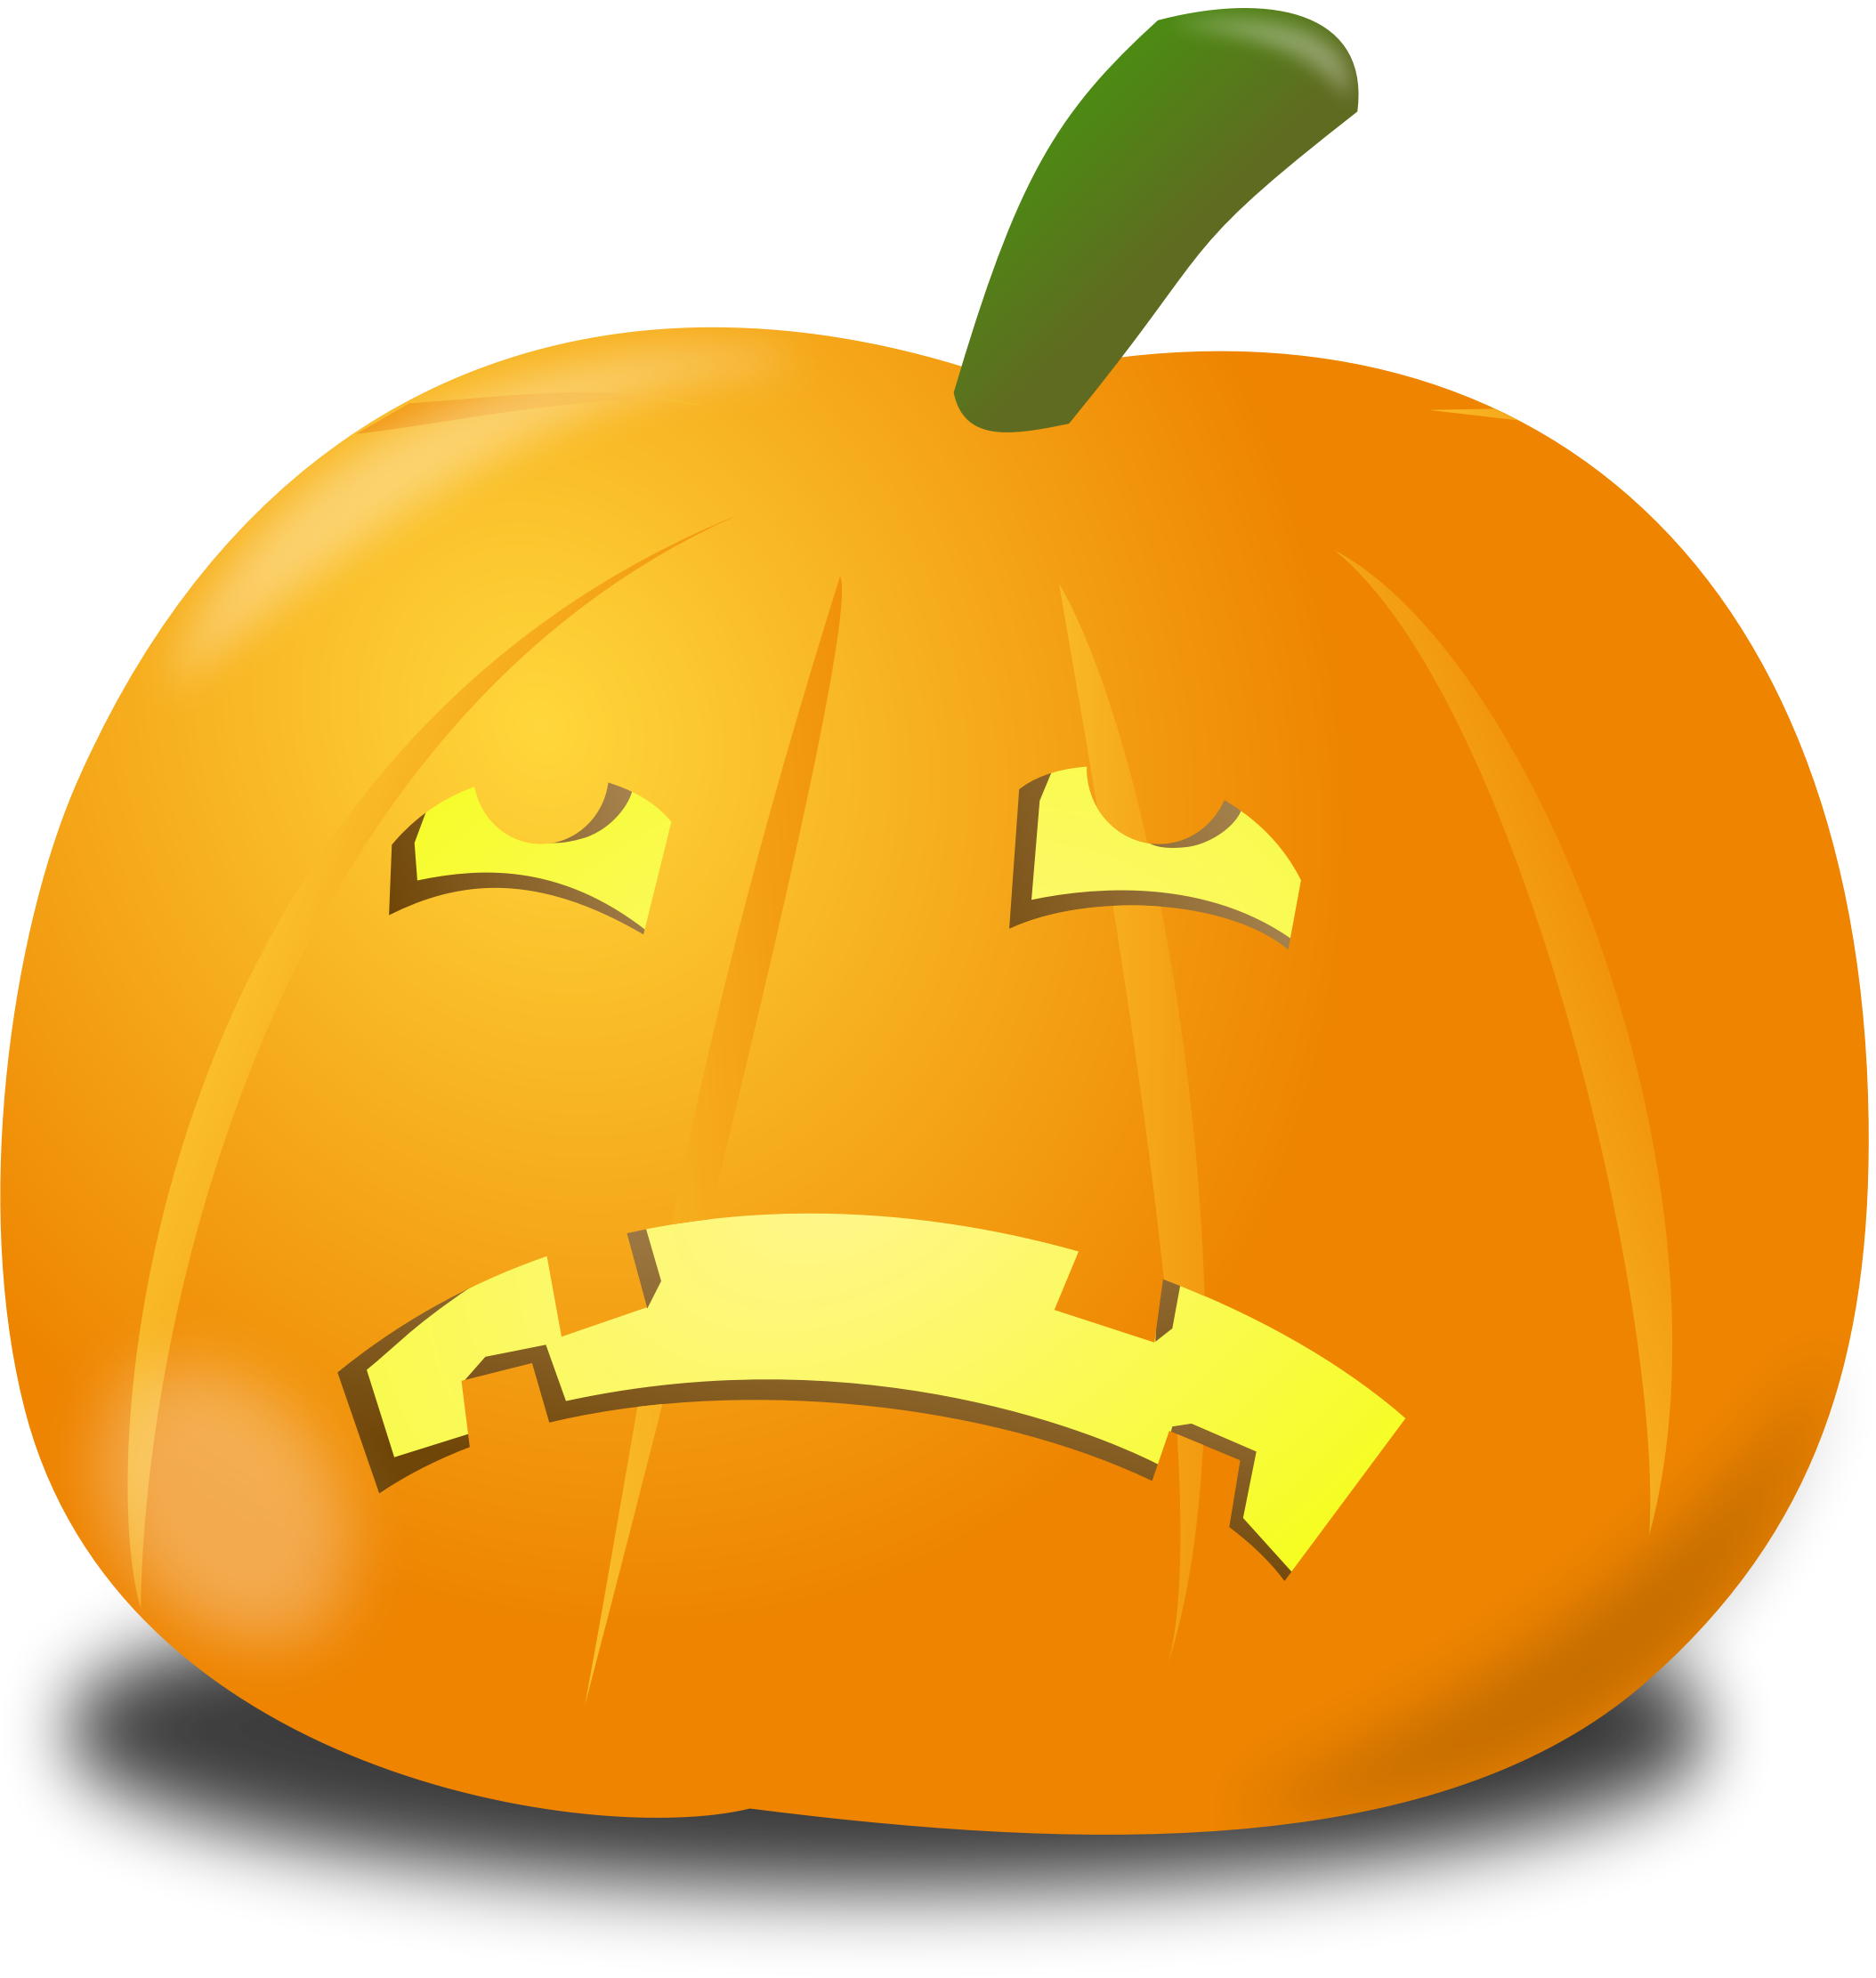 Sad pumpkin by nicubunu